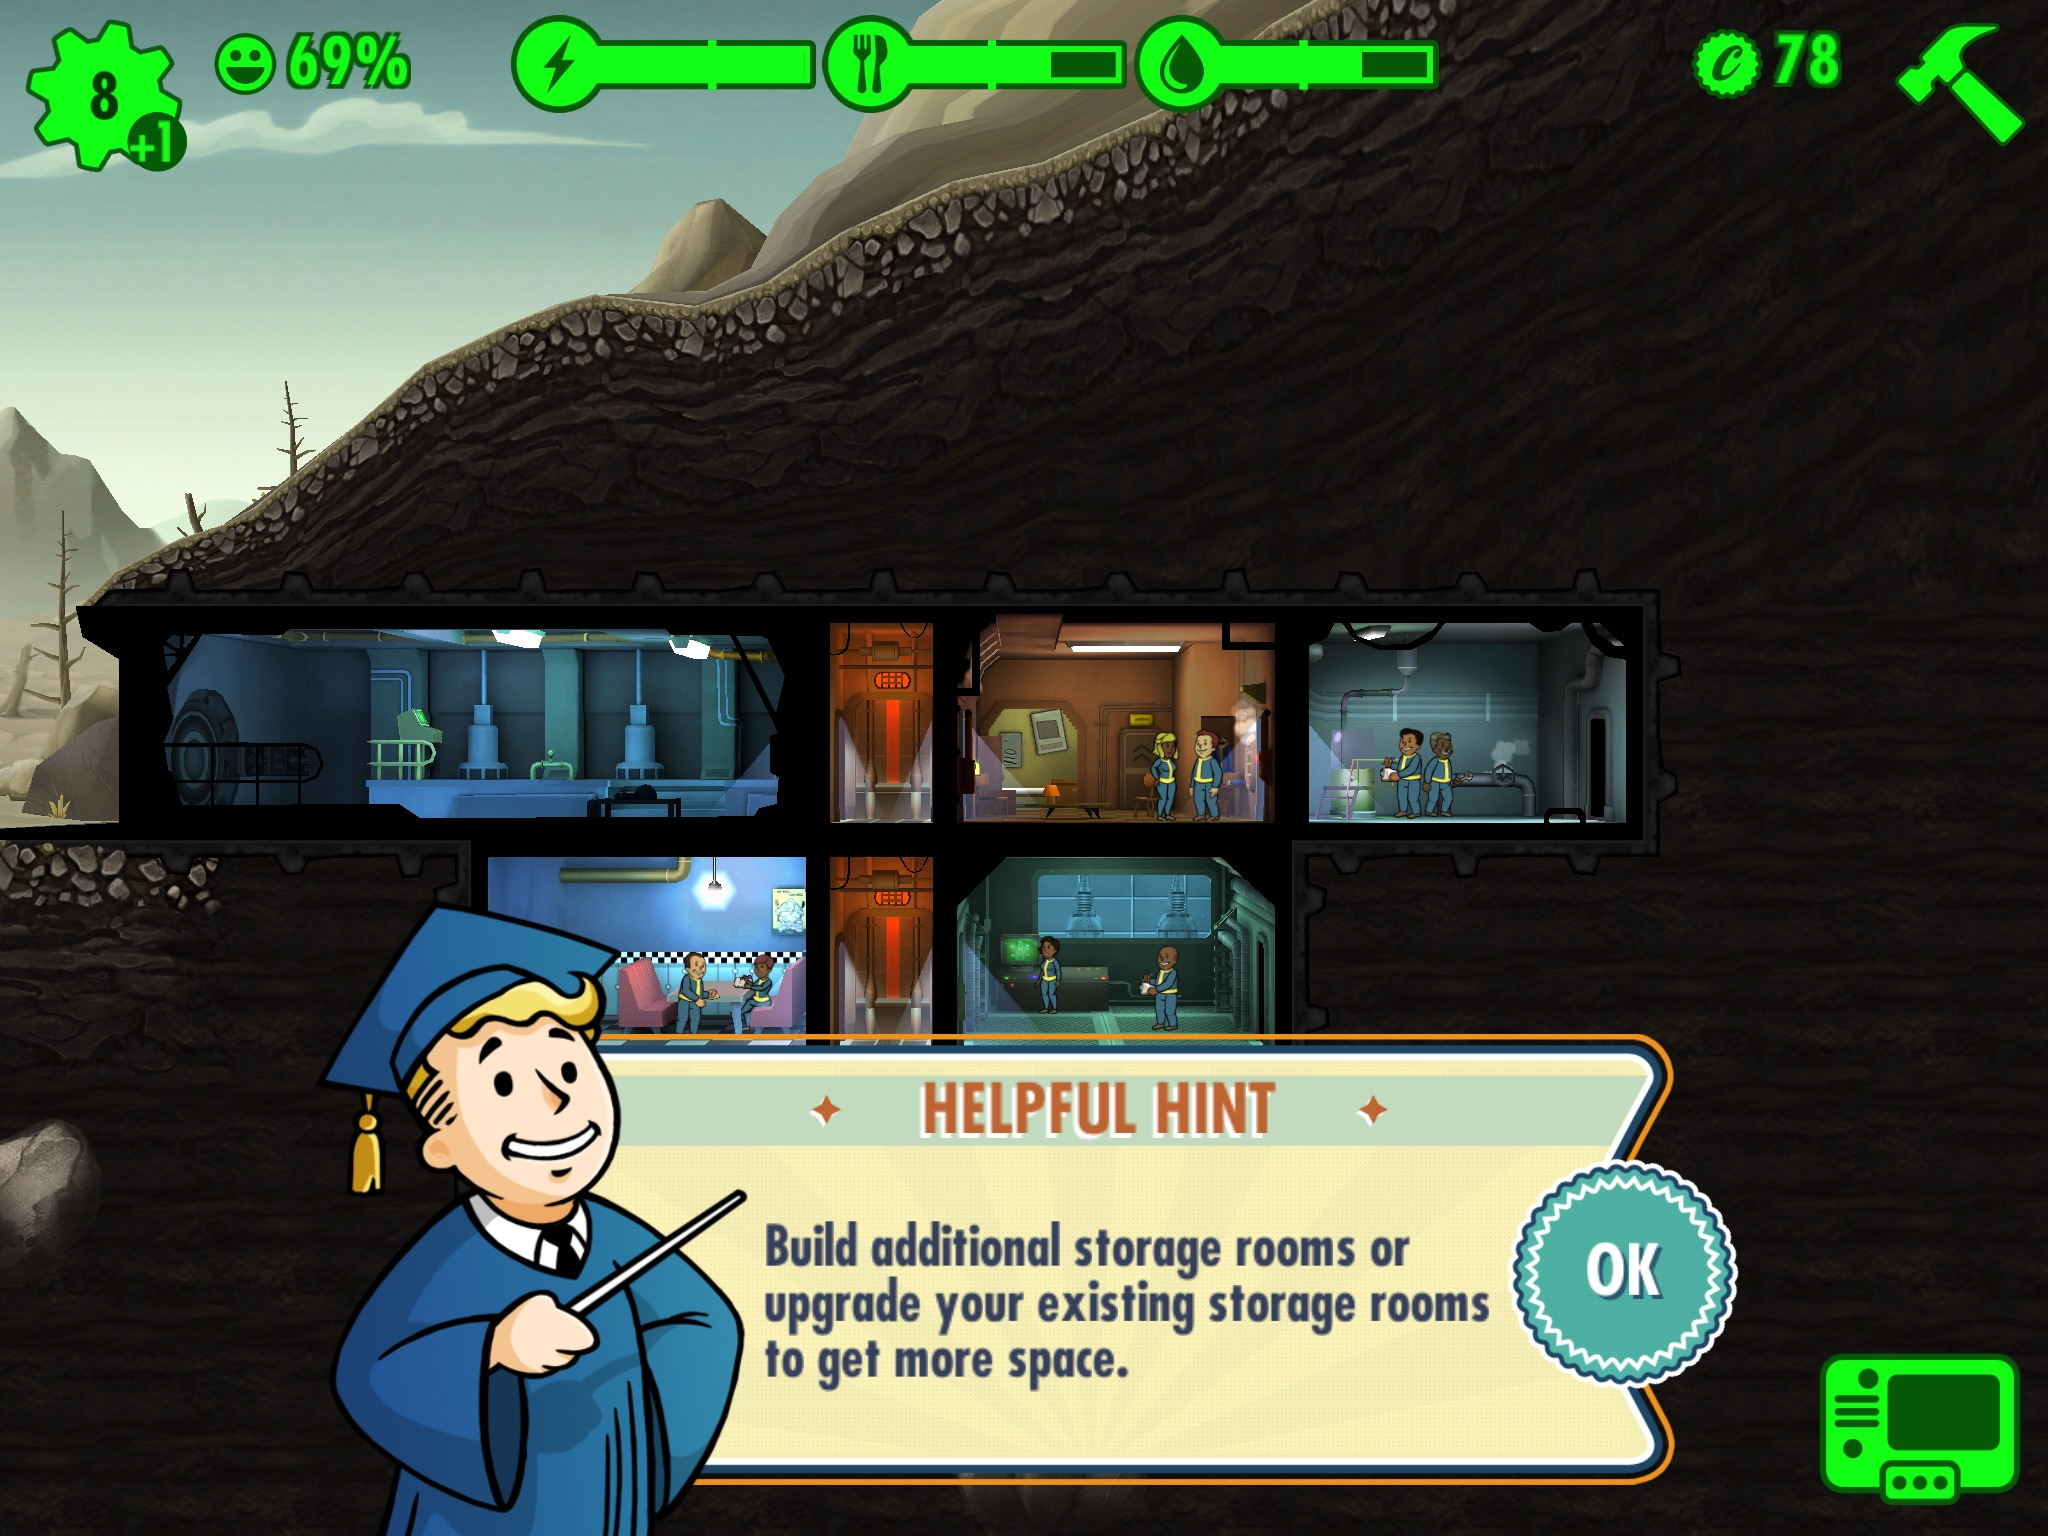 Fallout Shelter Android Game Tips Vault Layout Guide For Happiness